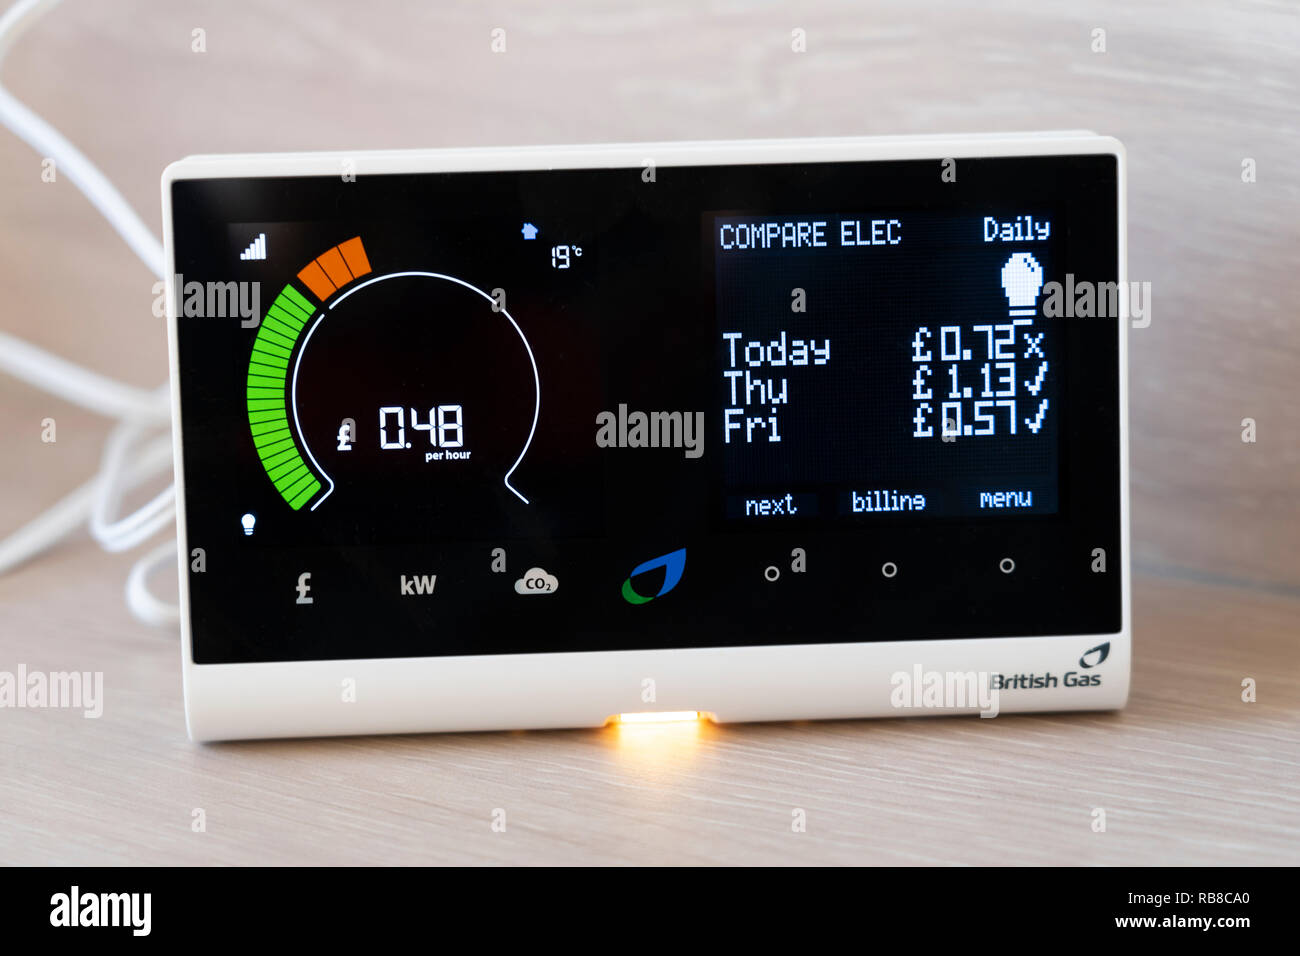 A British Gas smart meter in a home showing electricity consumption per hour and comparing with previous days usage - Stock Image